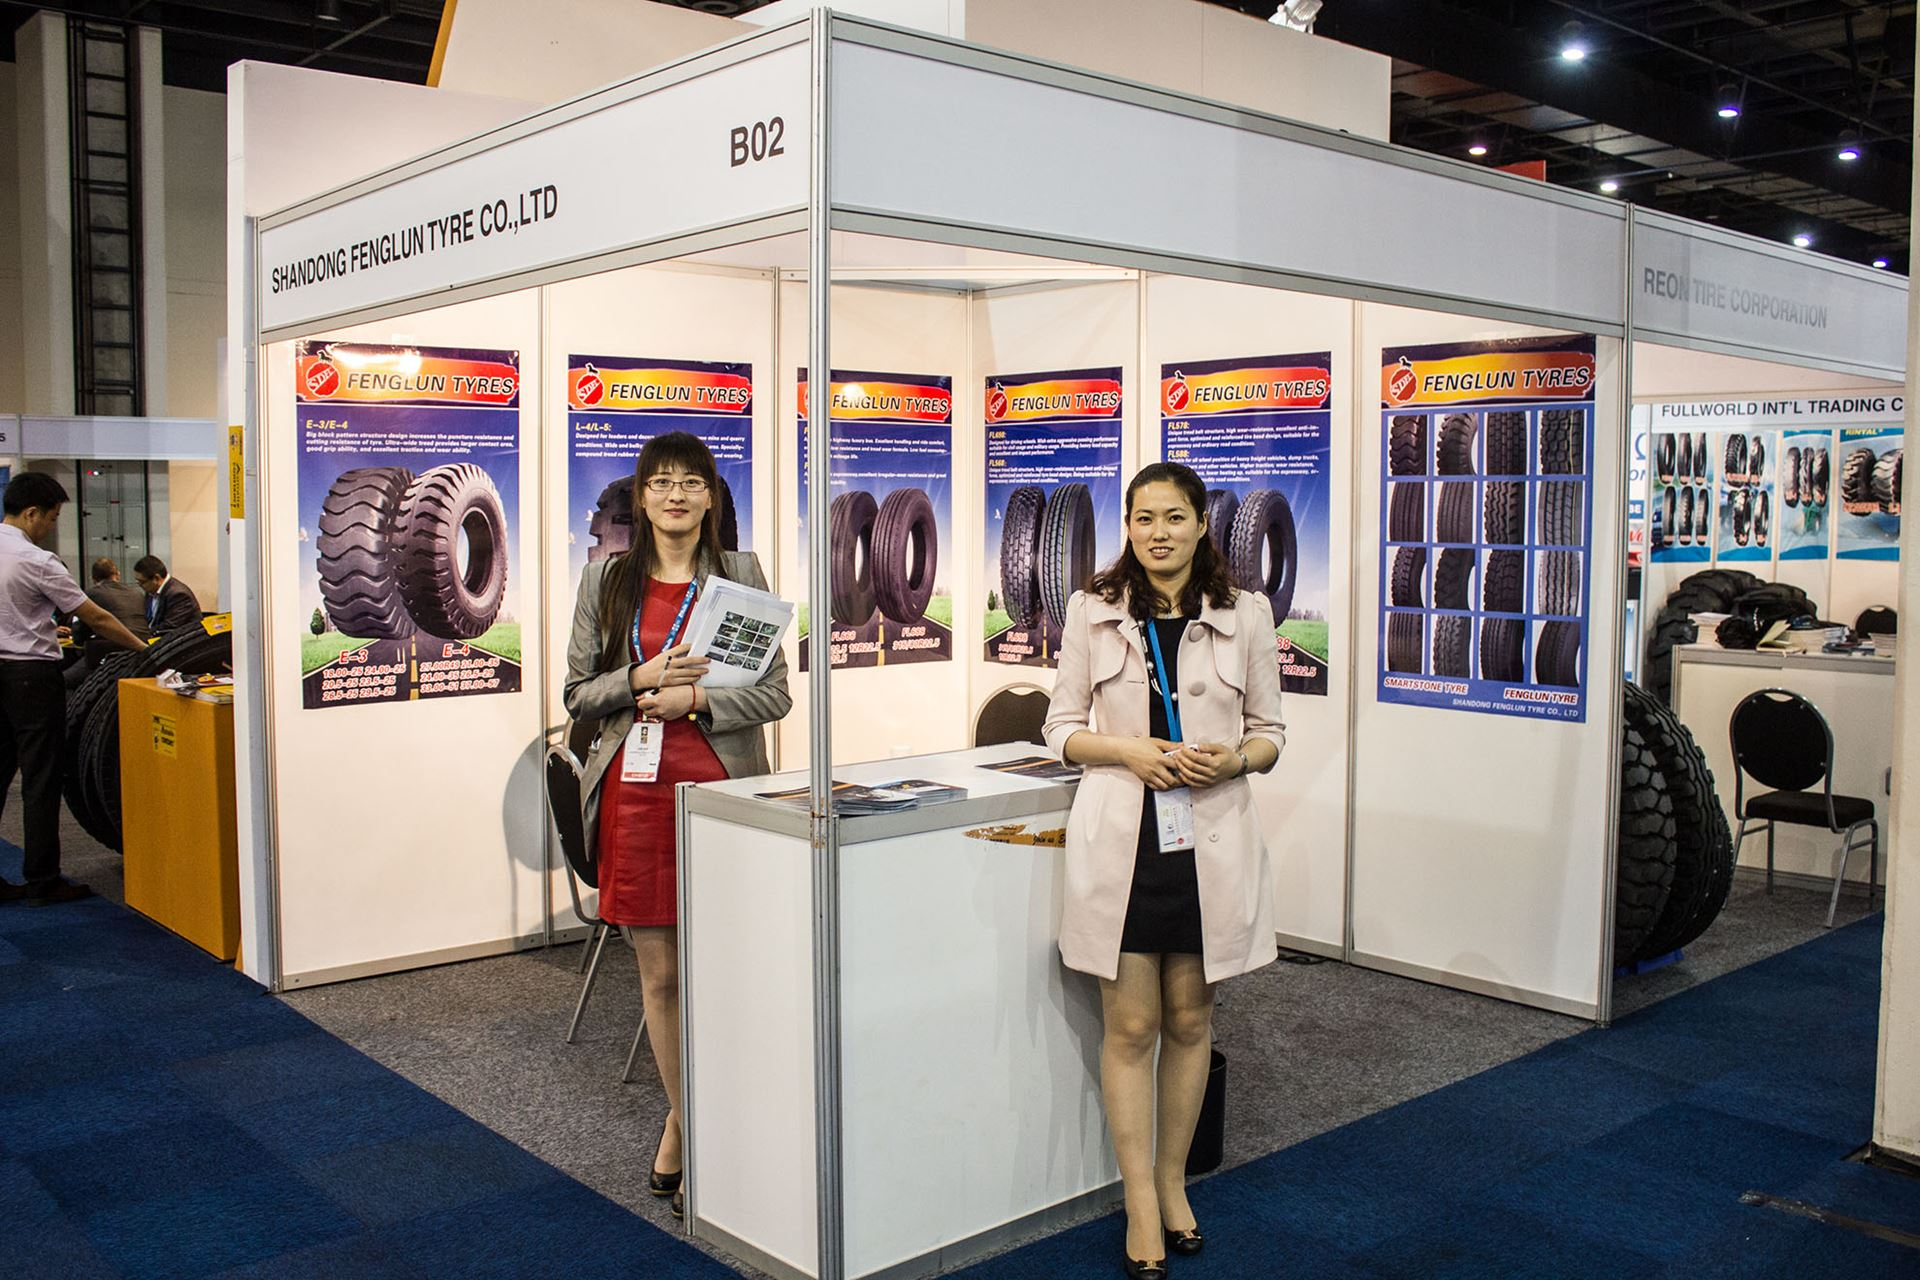 Tyre-Expo-South-Africa-2014-shadong-fenglun-Tyre